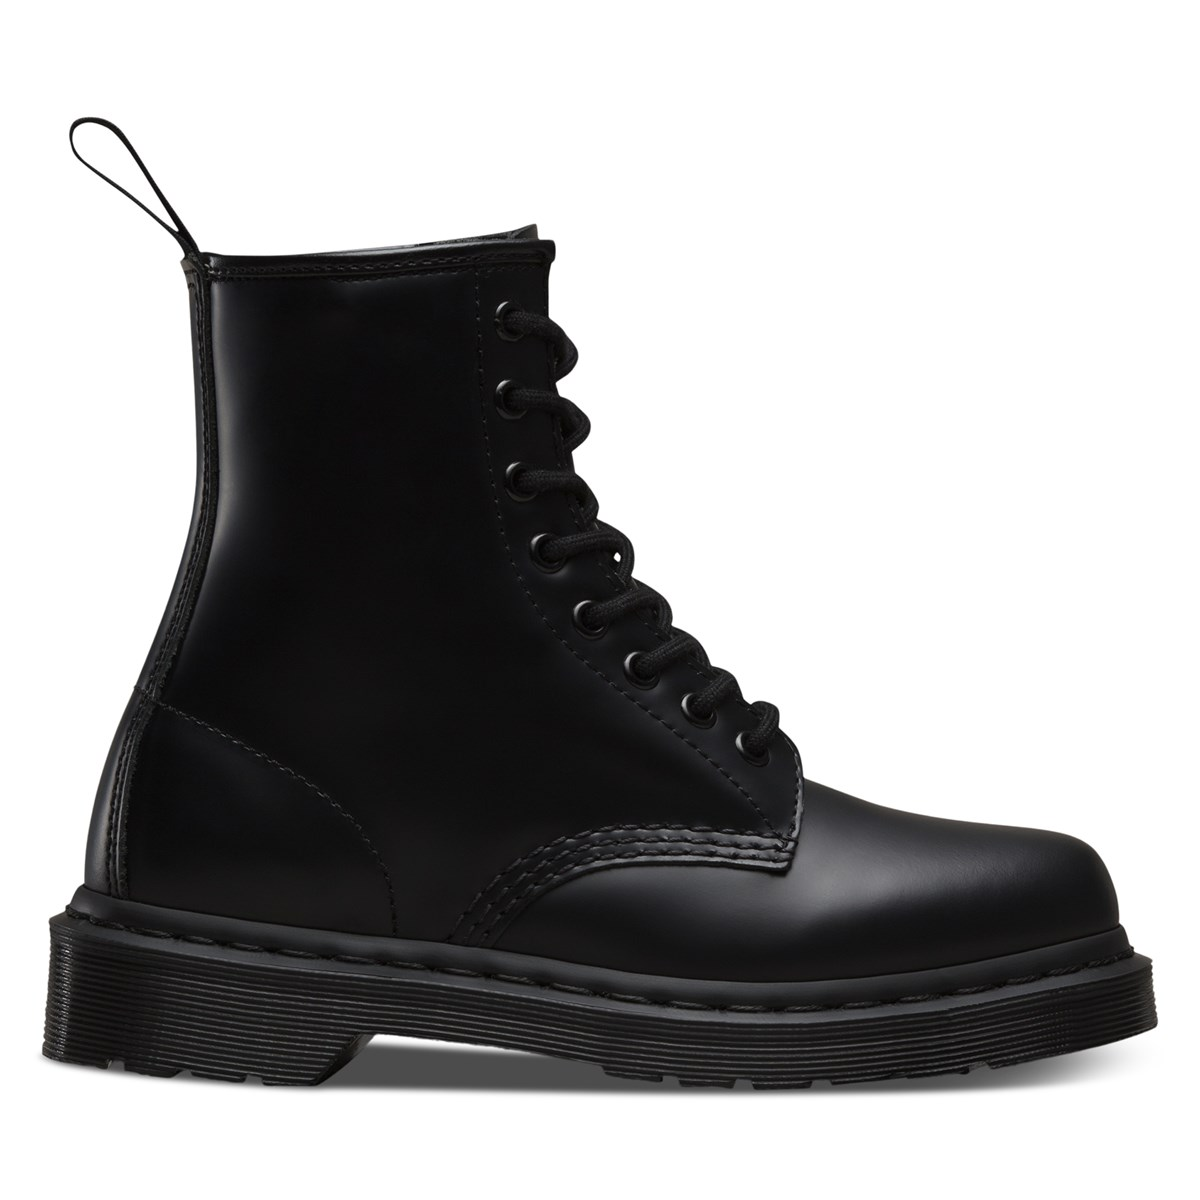 Men's 1460 X Boots in Black